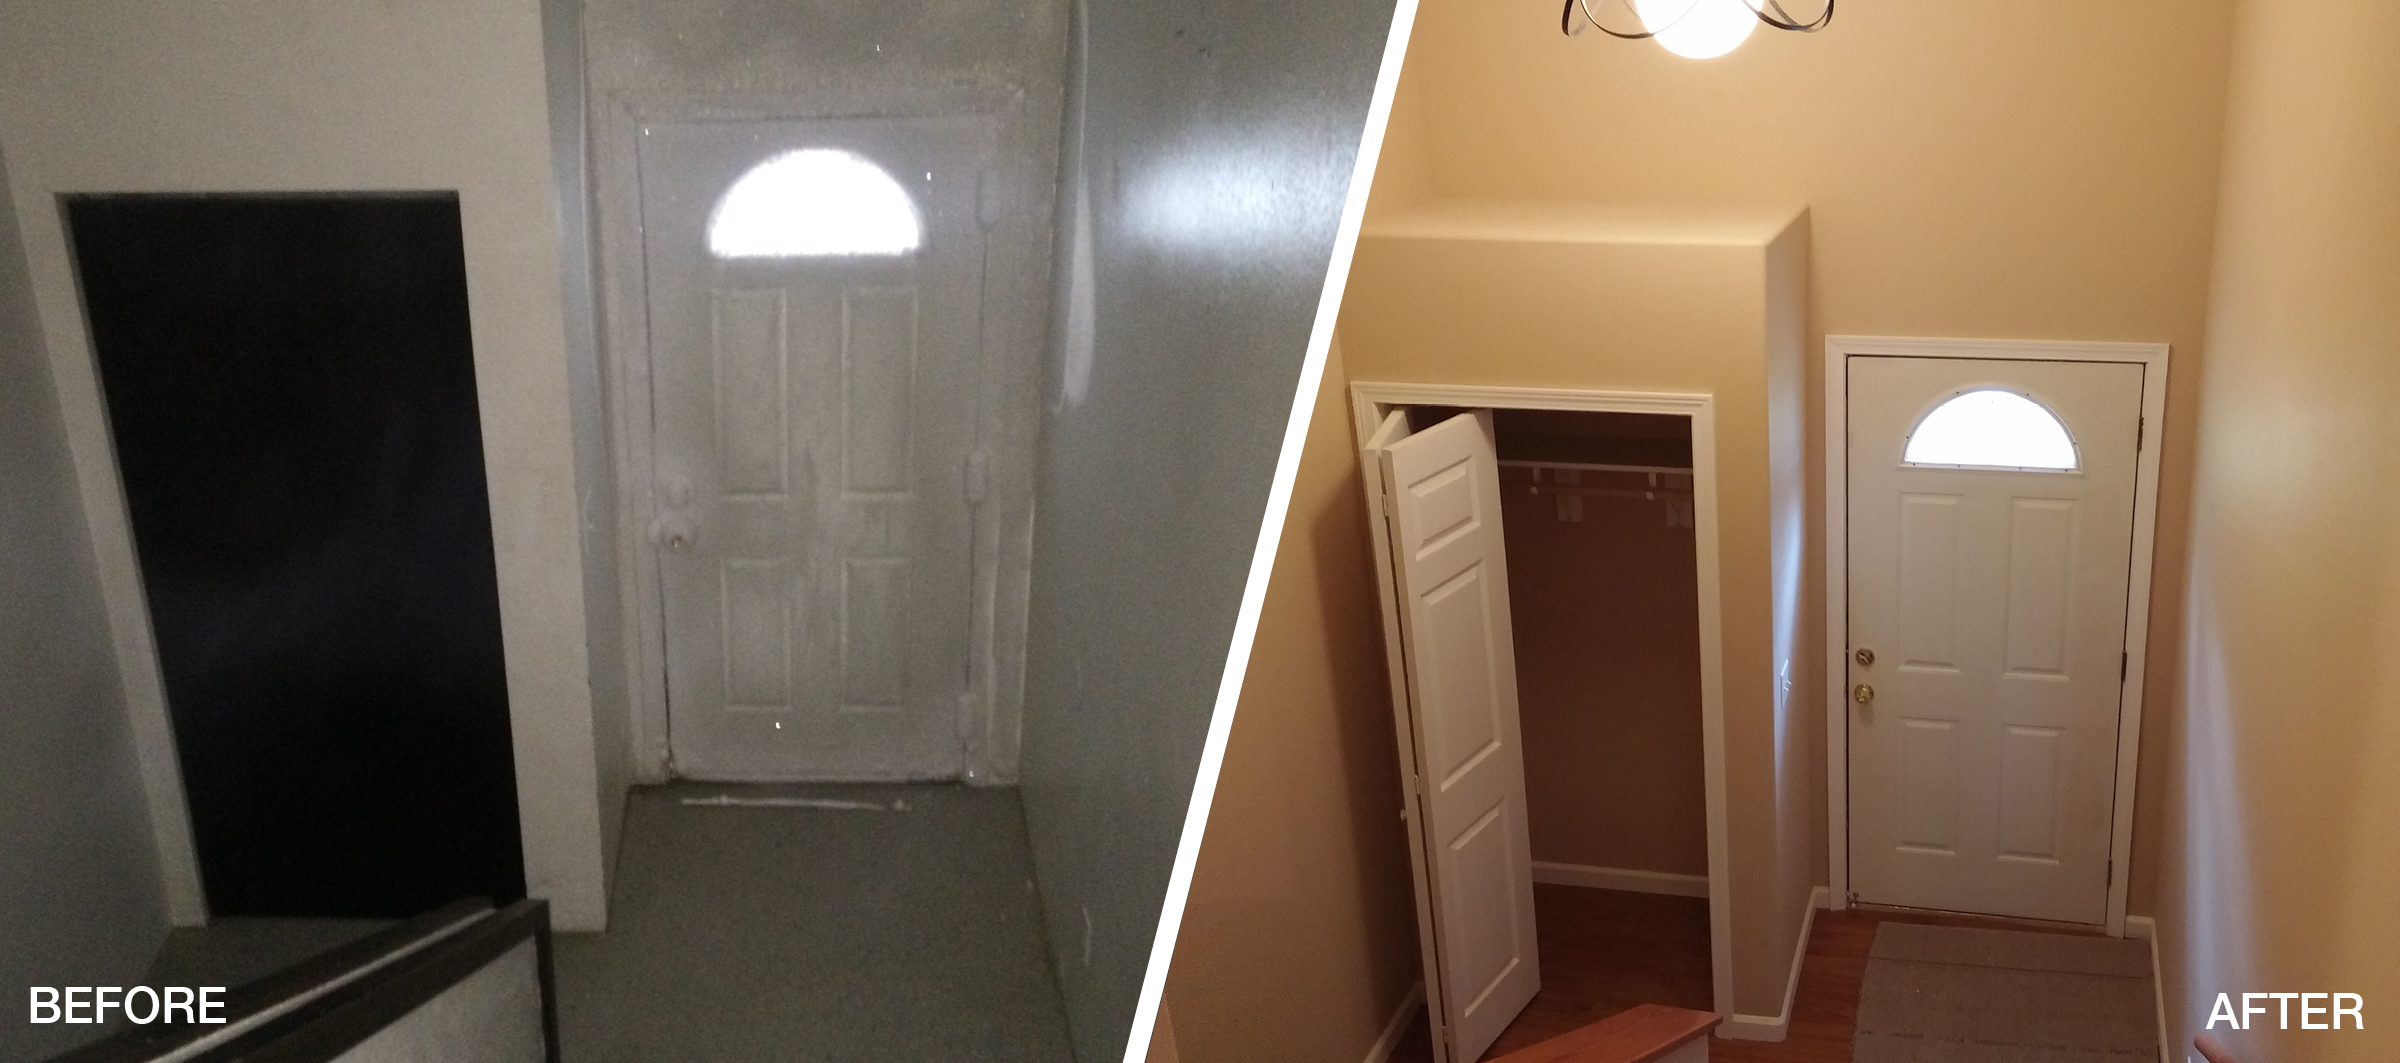 Freeze & Flood Front Door Before&After